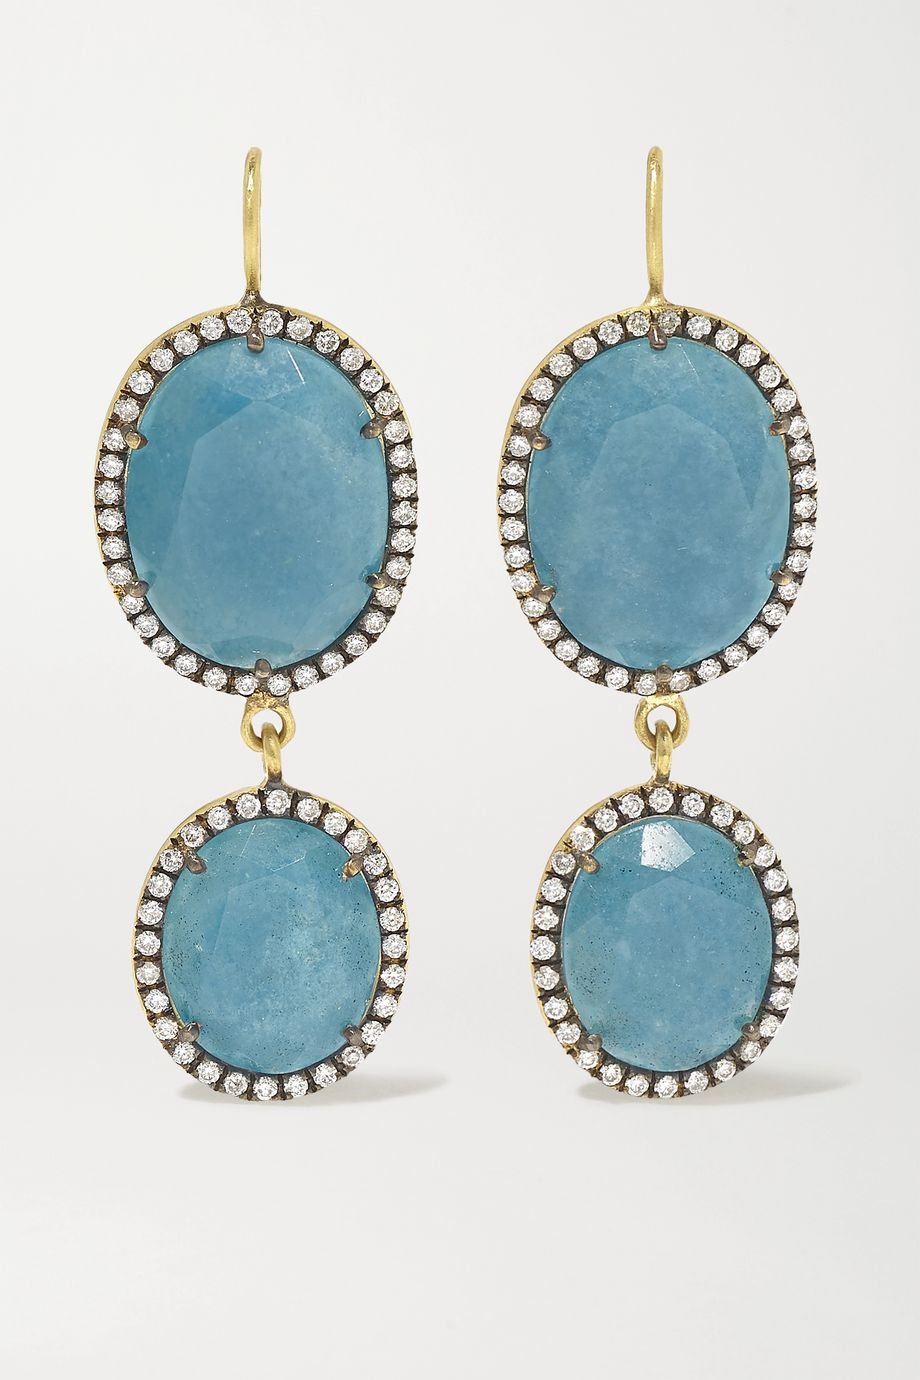 Sylva & Cie 18-karat gold, quartz and diamond earrings